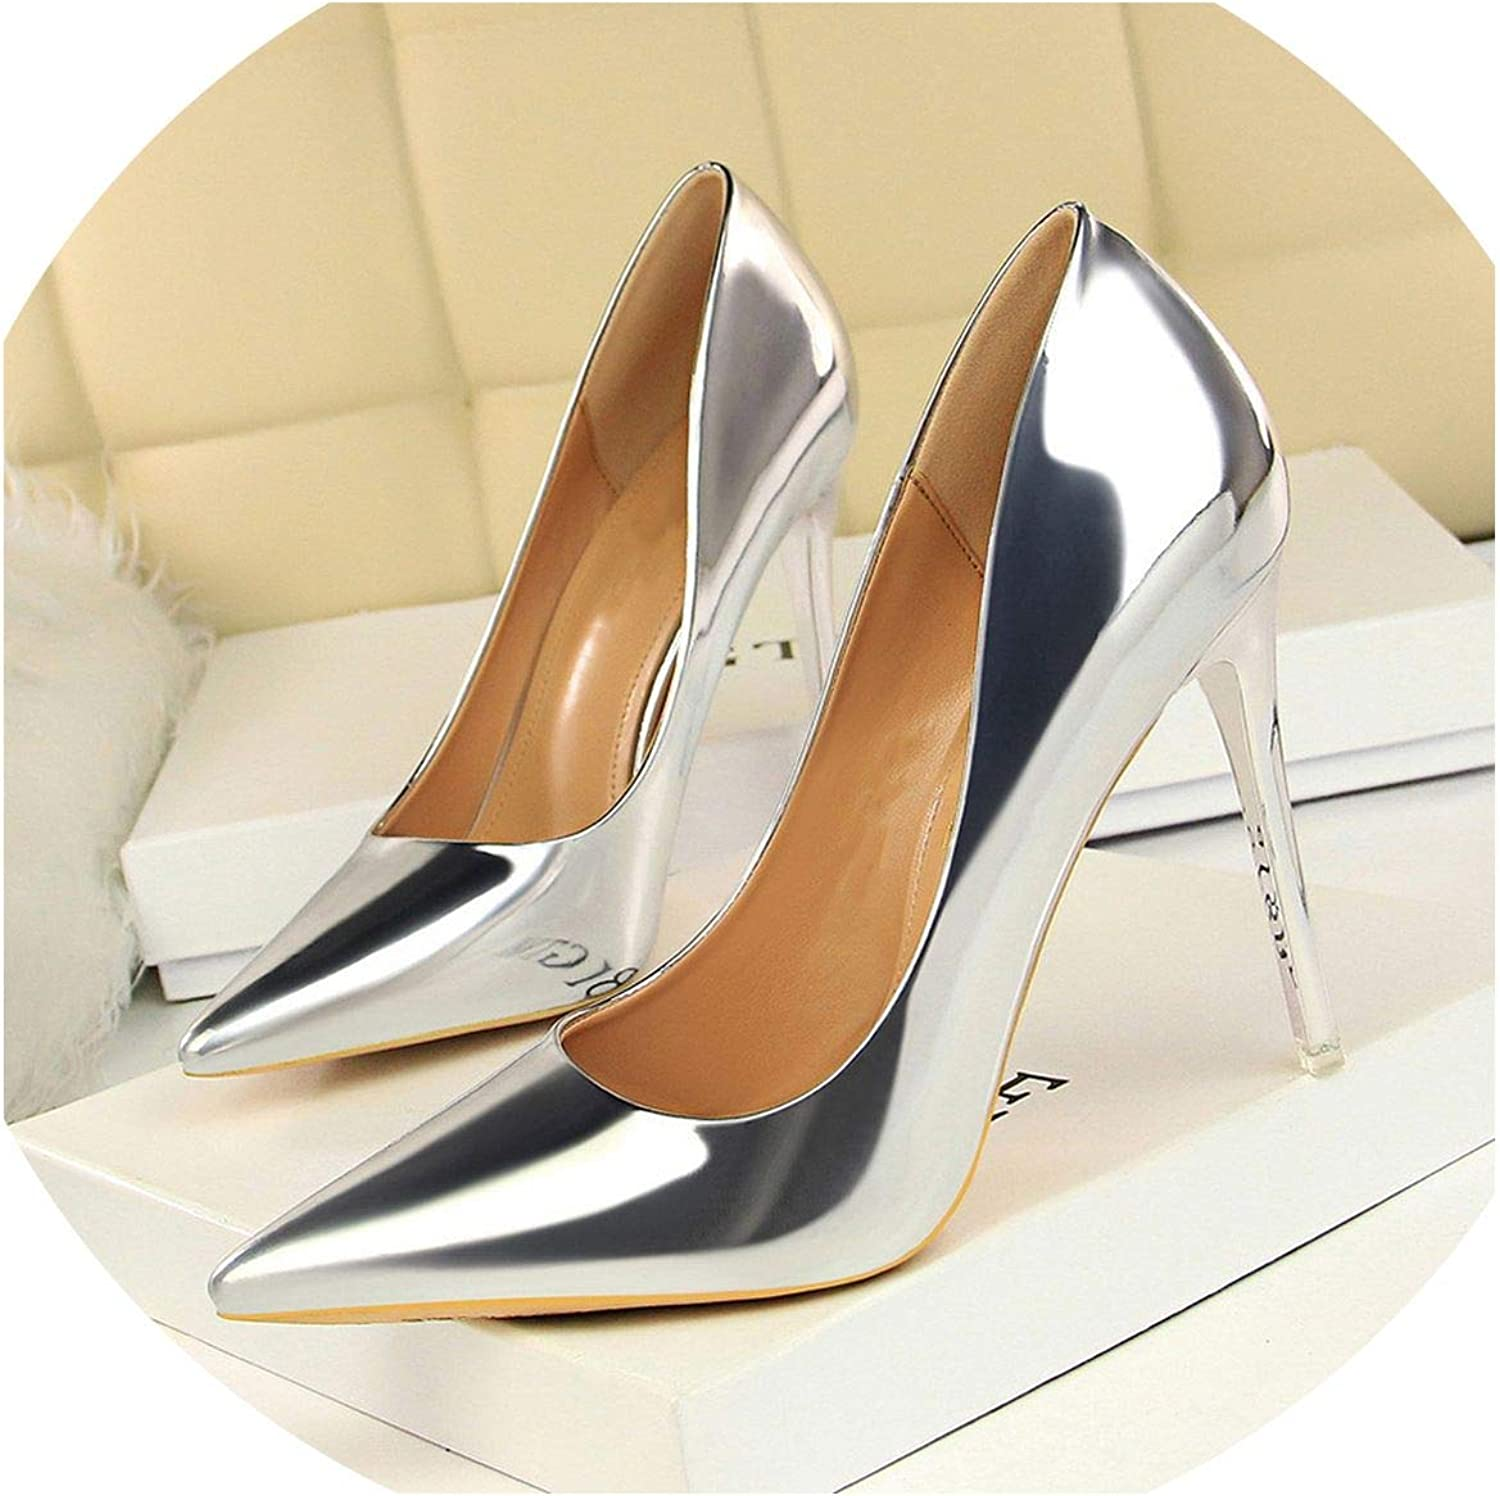 Patent Leather Thin Heels Office Women shoes Pumps Fashion High Heels shoes Women's Pointed Toe